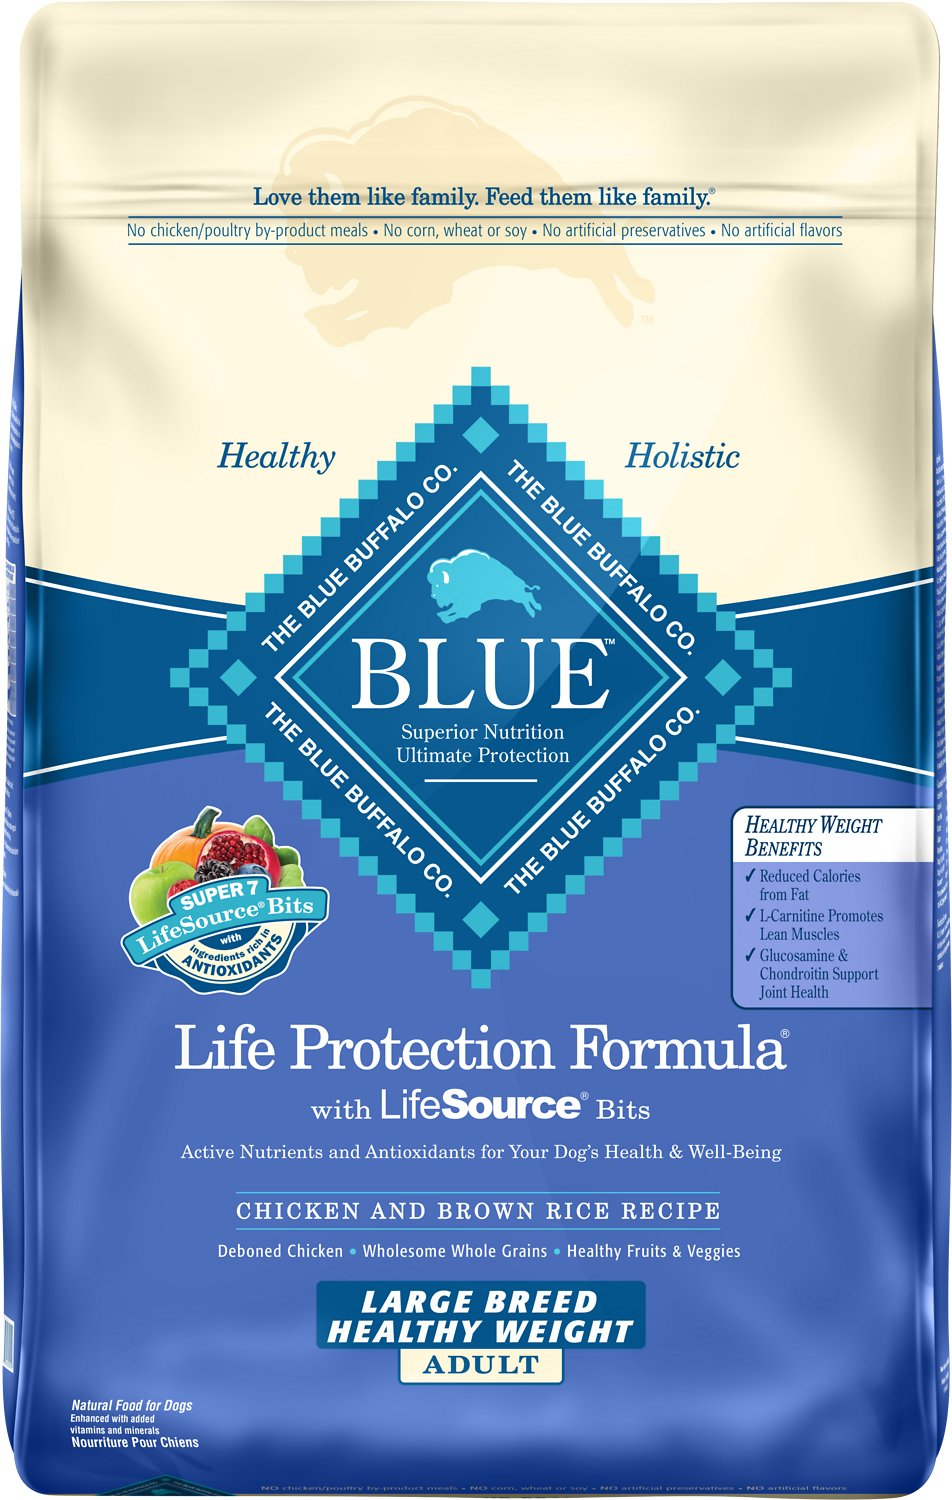 Blue Buffalo Life Protection Formula Large Breed Healthy Weight Adult Chicken & Brown Rice Recipe Dry Dog Food, 30-lb bag Image